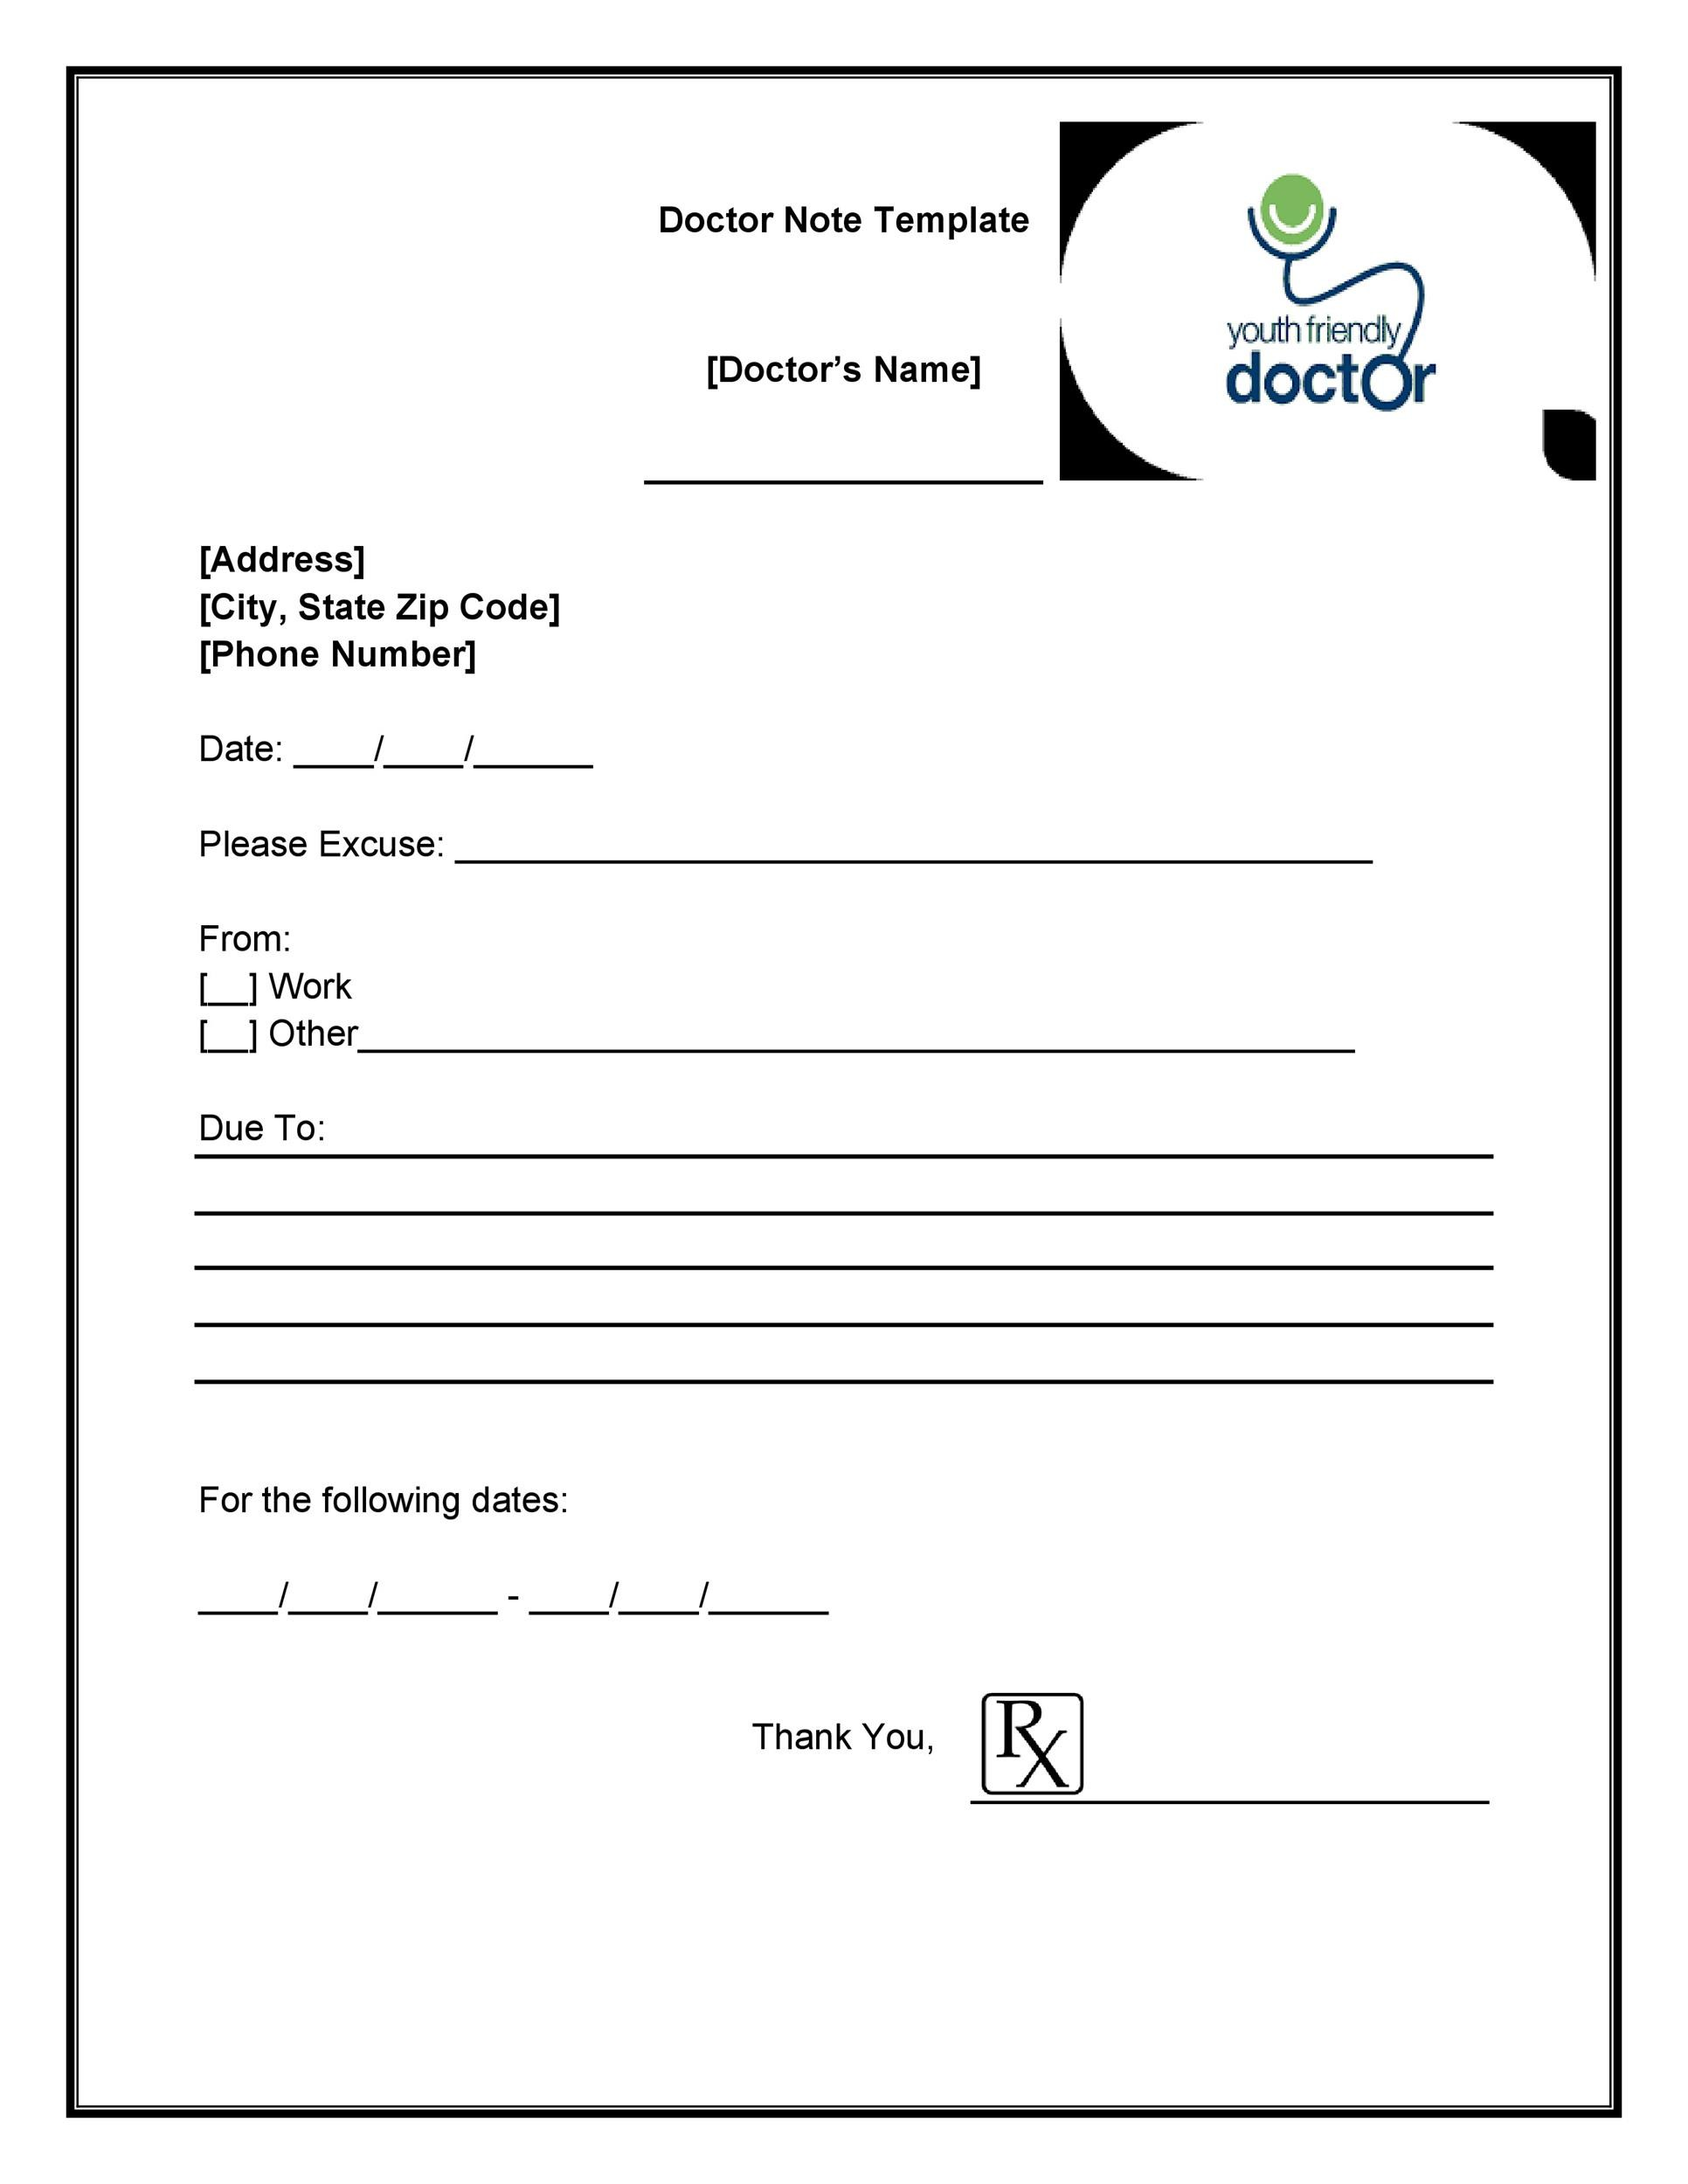 Free Bonus Doctor Notes Template 03